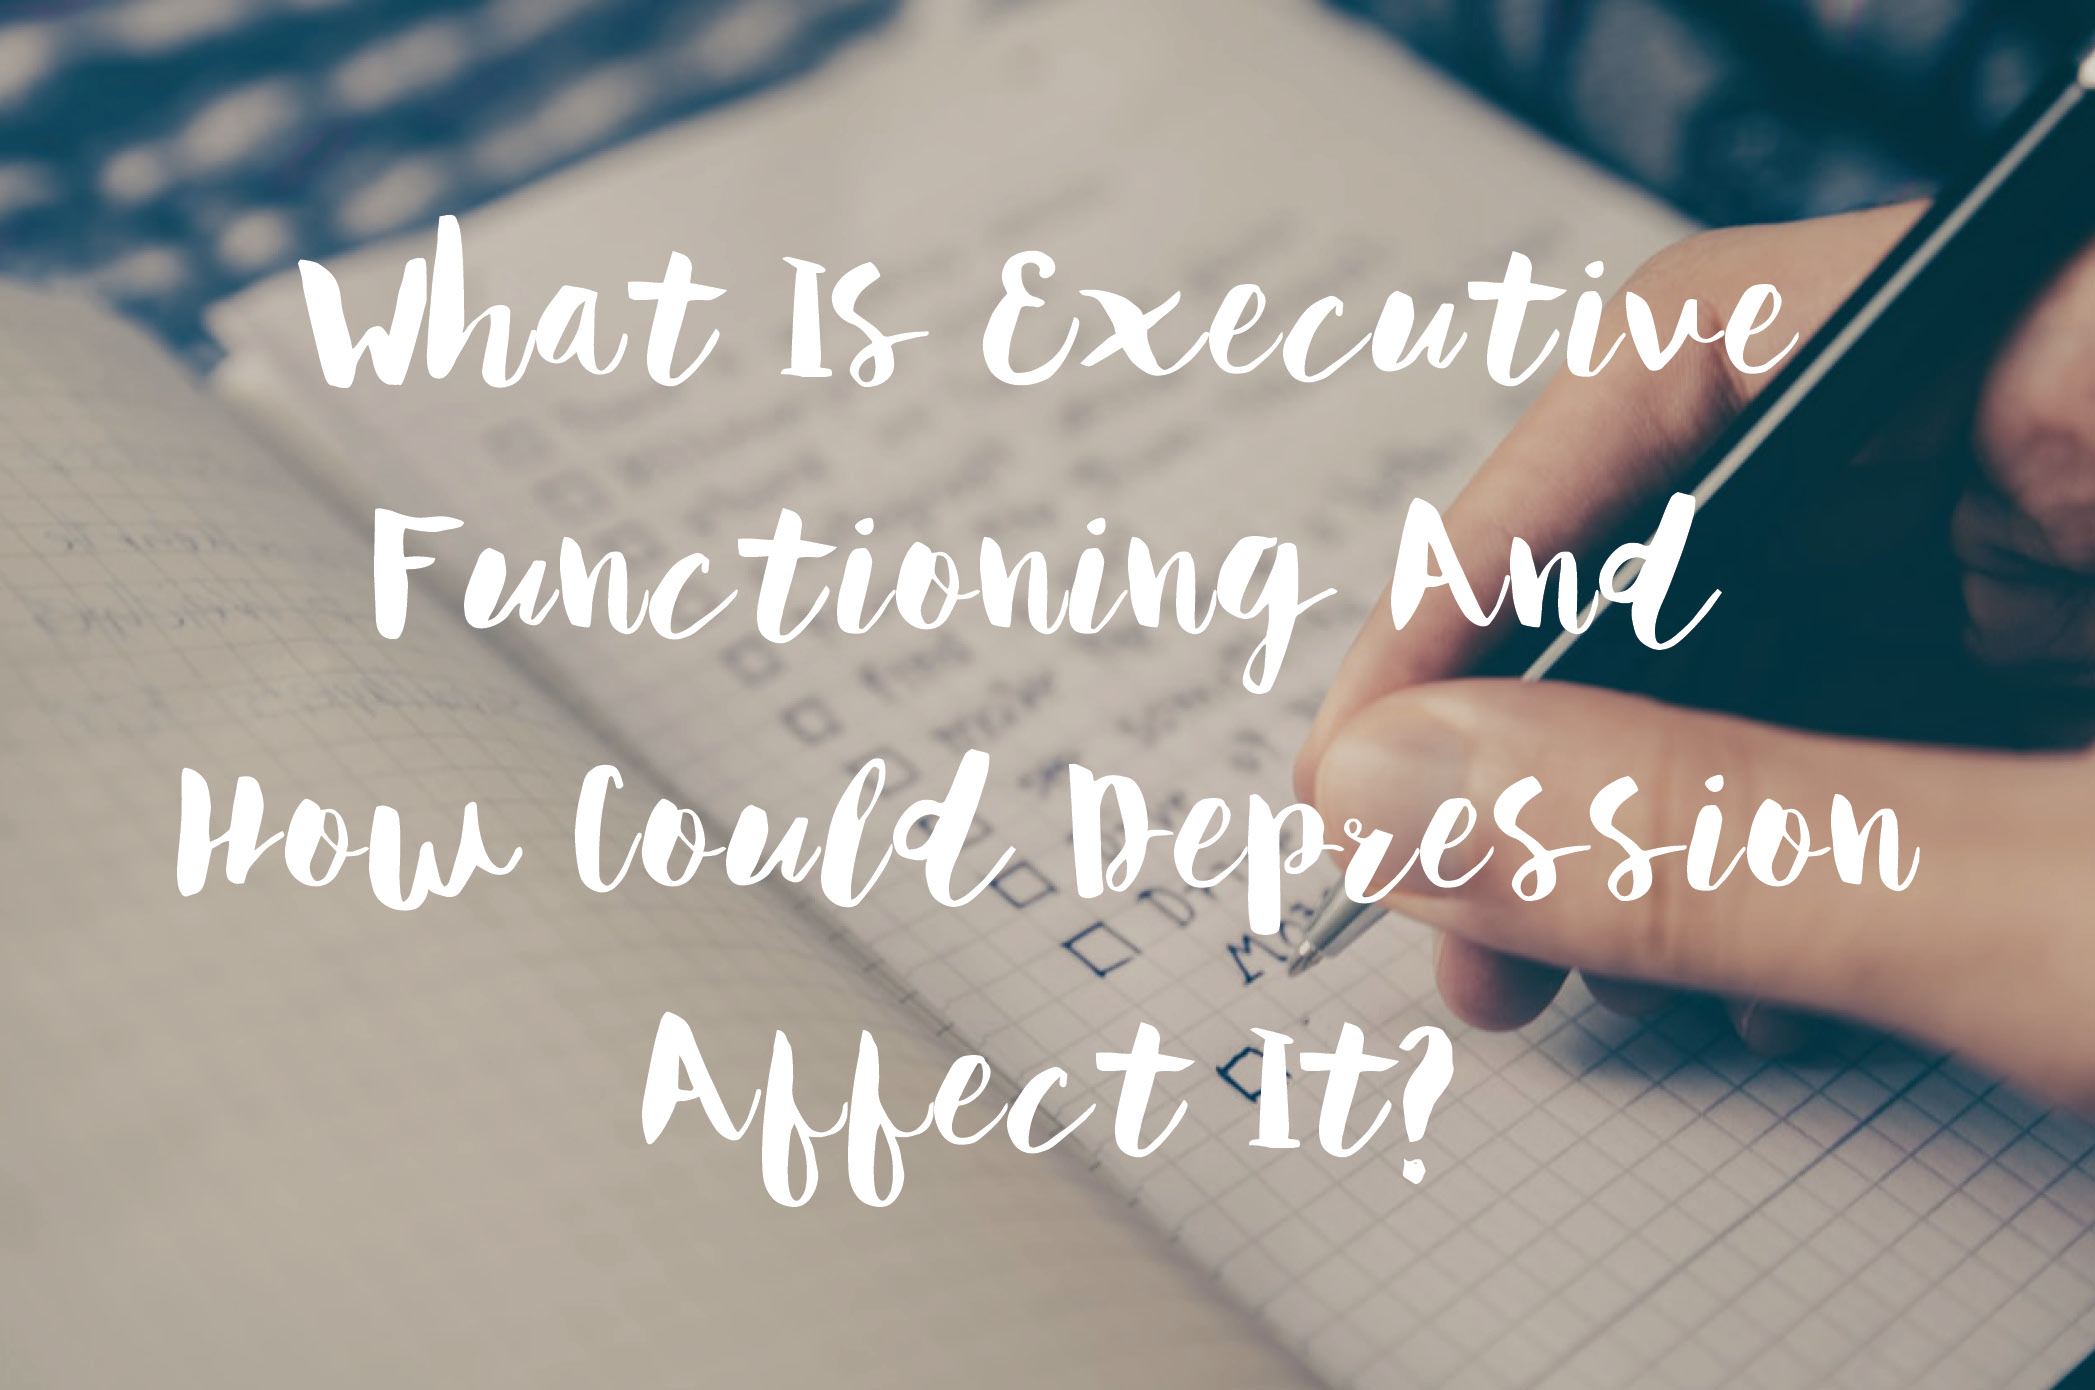 What Is Executive Functioning And How Could Depression Affect It?